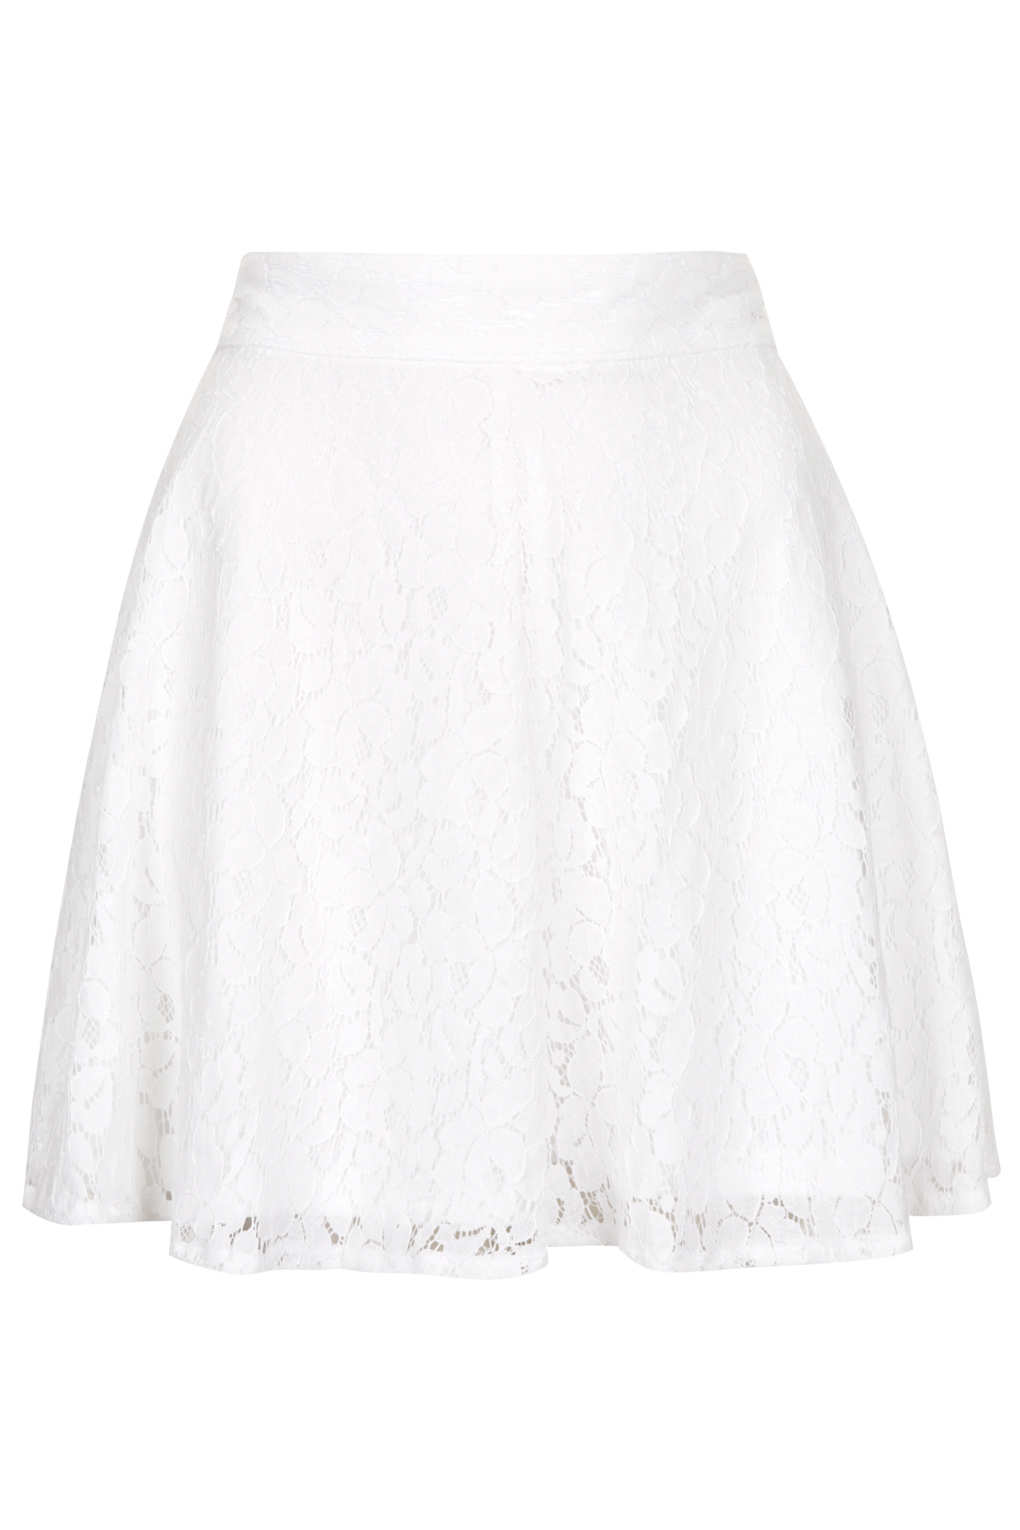 Topshop High Waisted Lace Skater Skirt in White | Lyst